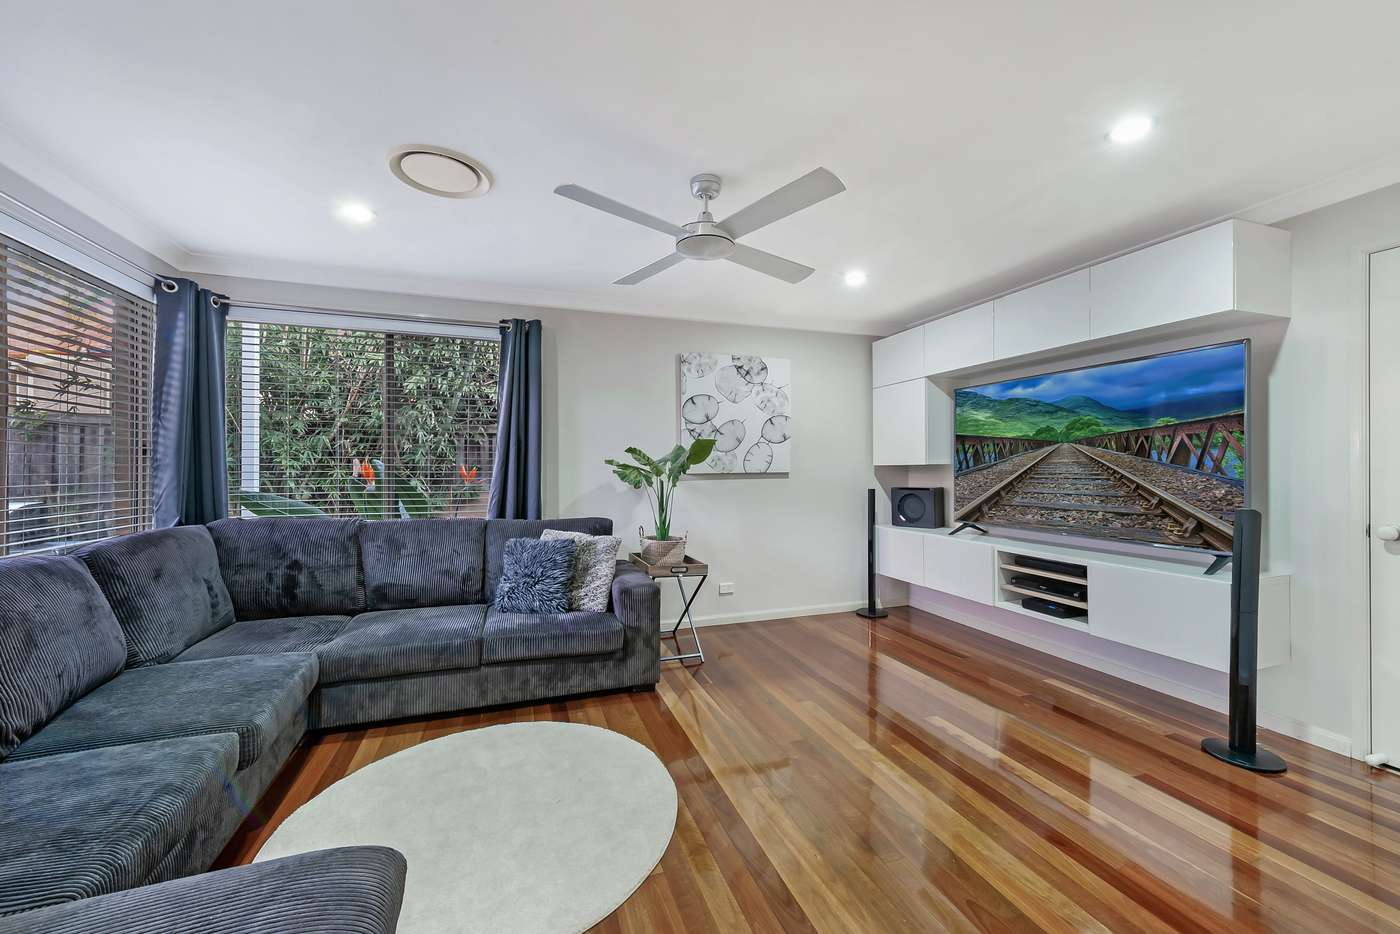 Sixth view of Homely house listing, 18 Islington Road, Stanhope Gardens NSW 2768